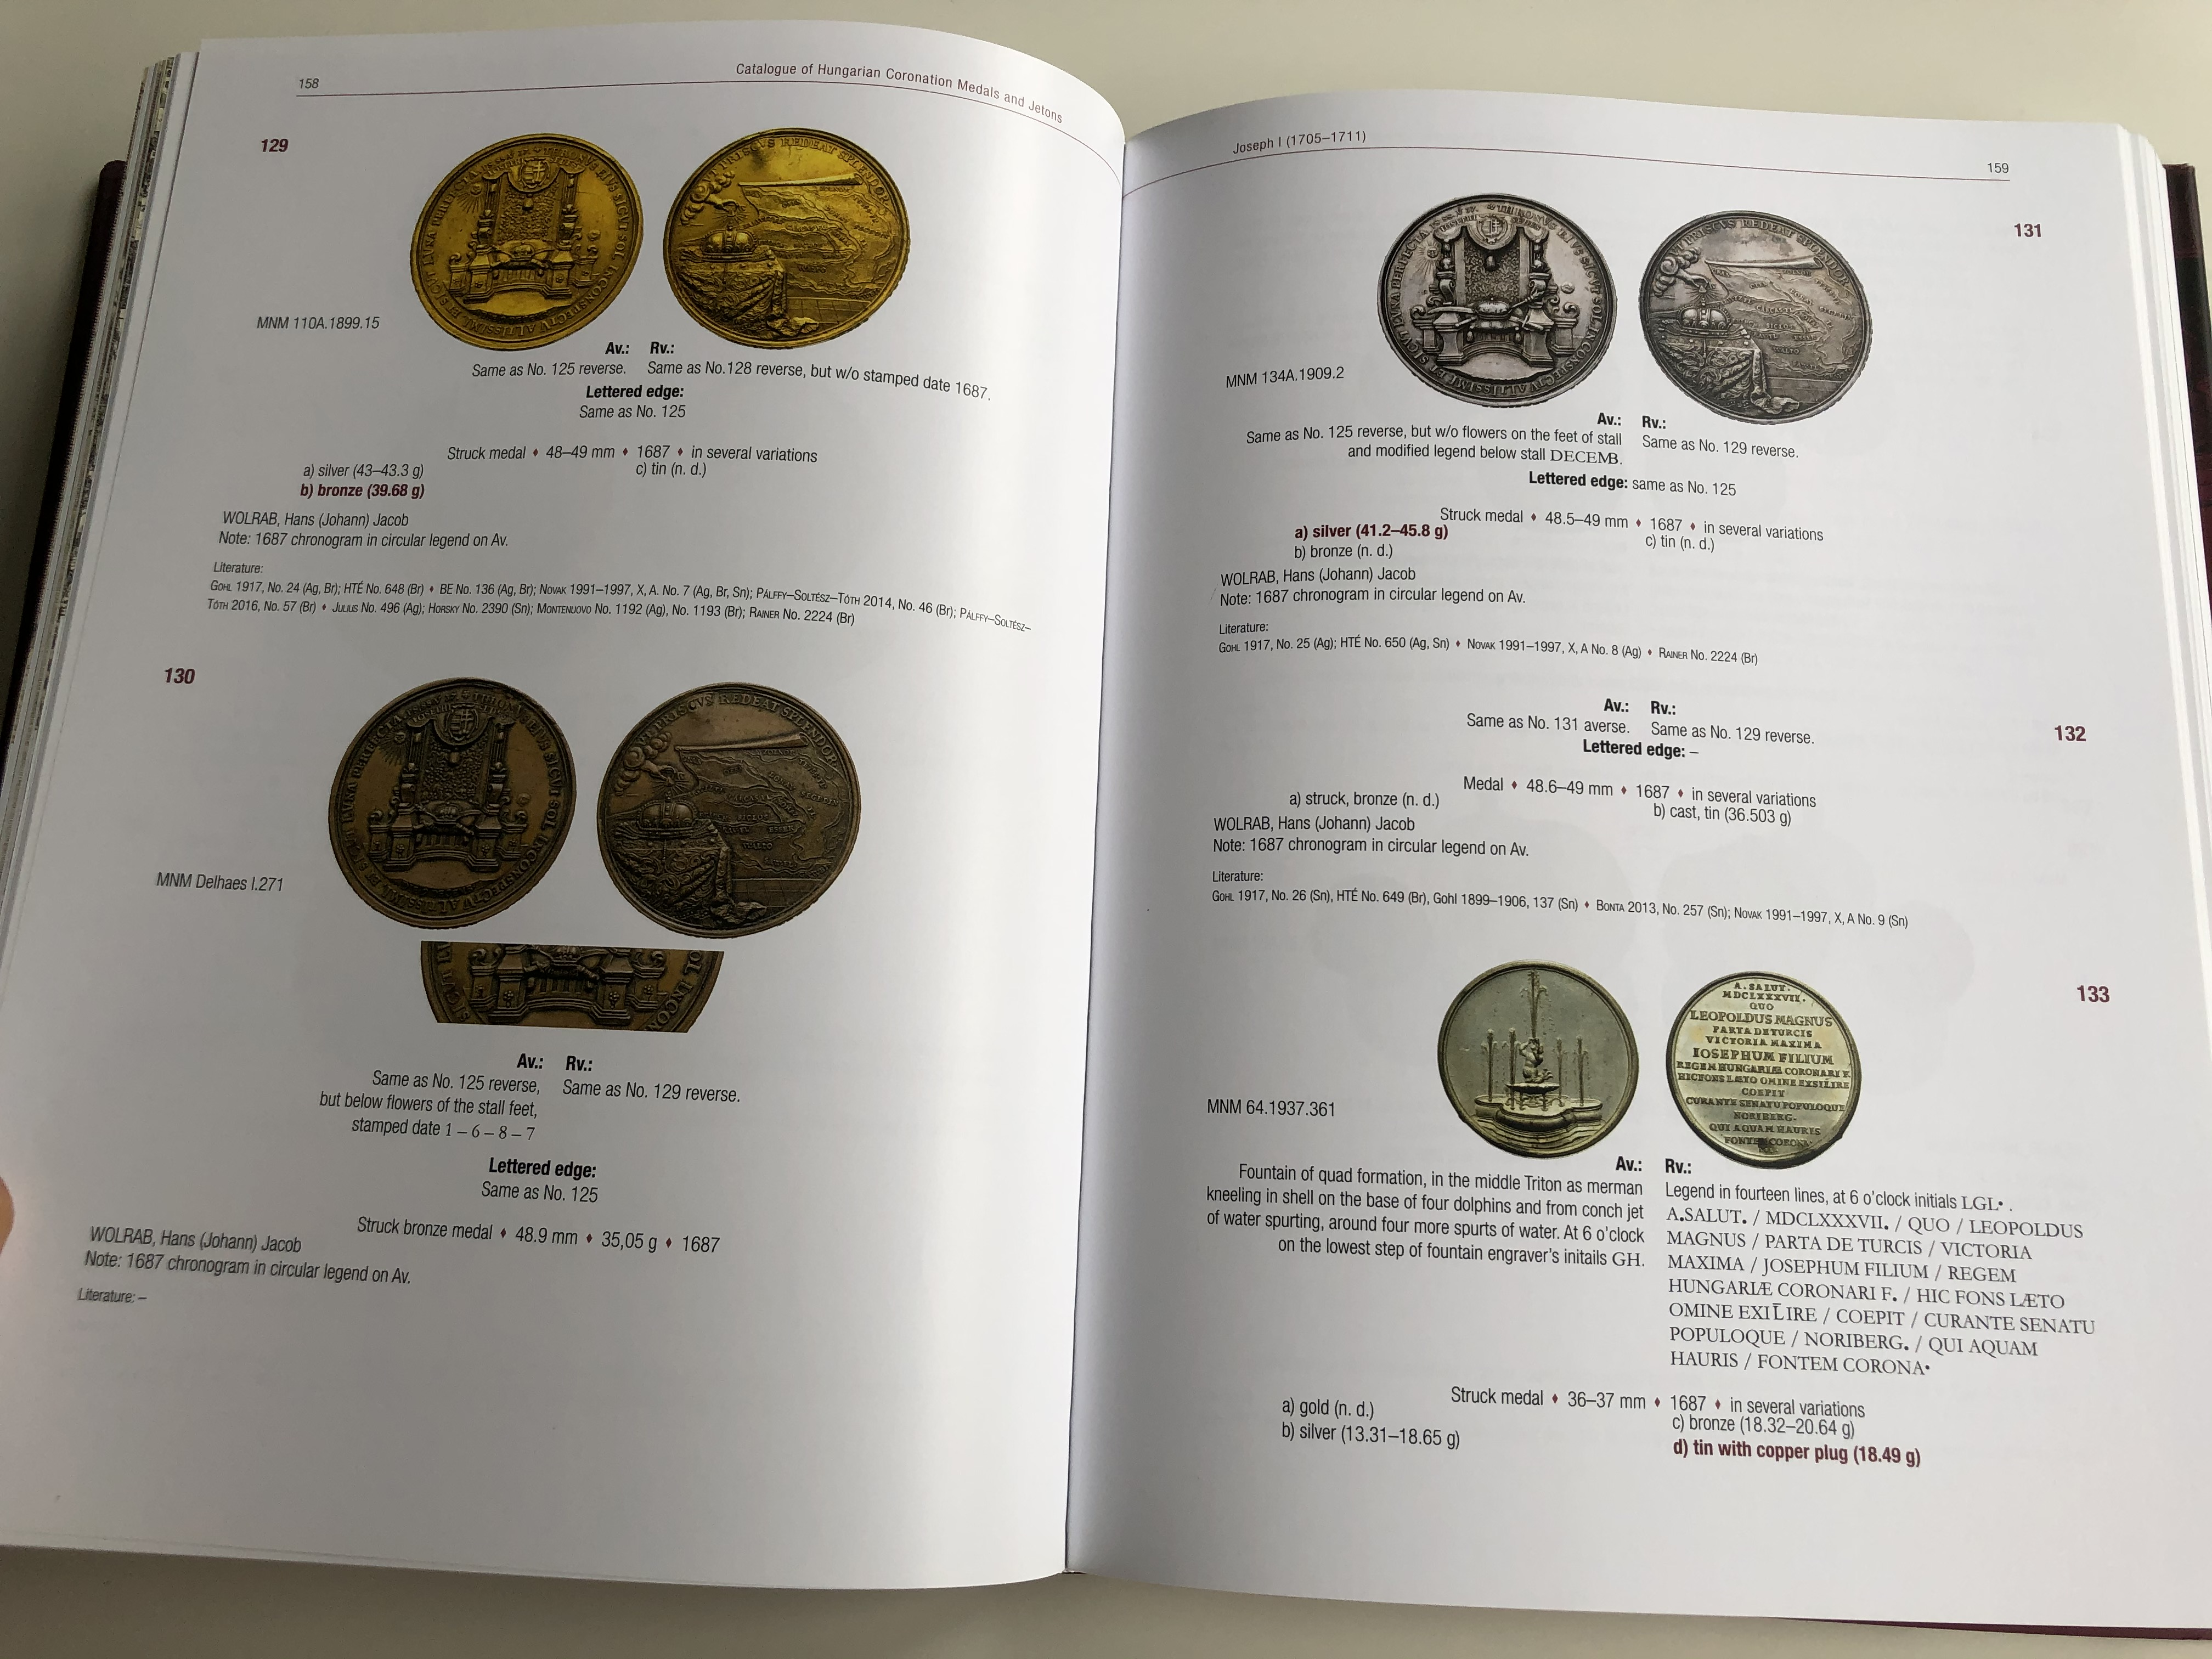 coronatio-hungarica-in-nummis-english-language-catalog-of-hungarian-medals-and-jetons-from-hungarian-royal-coronations-1508-1916-11.jpg